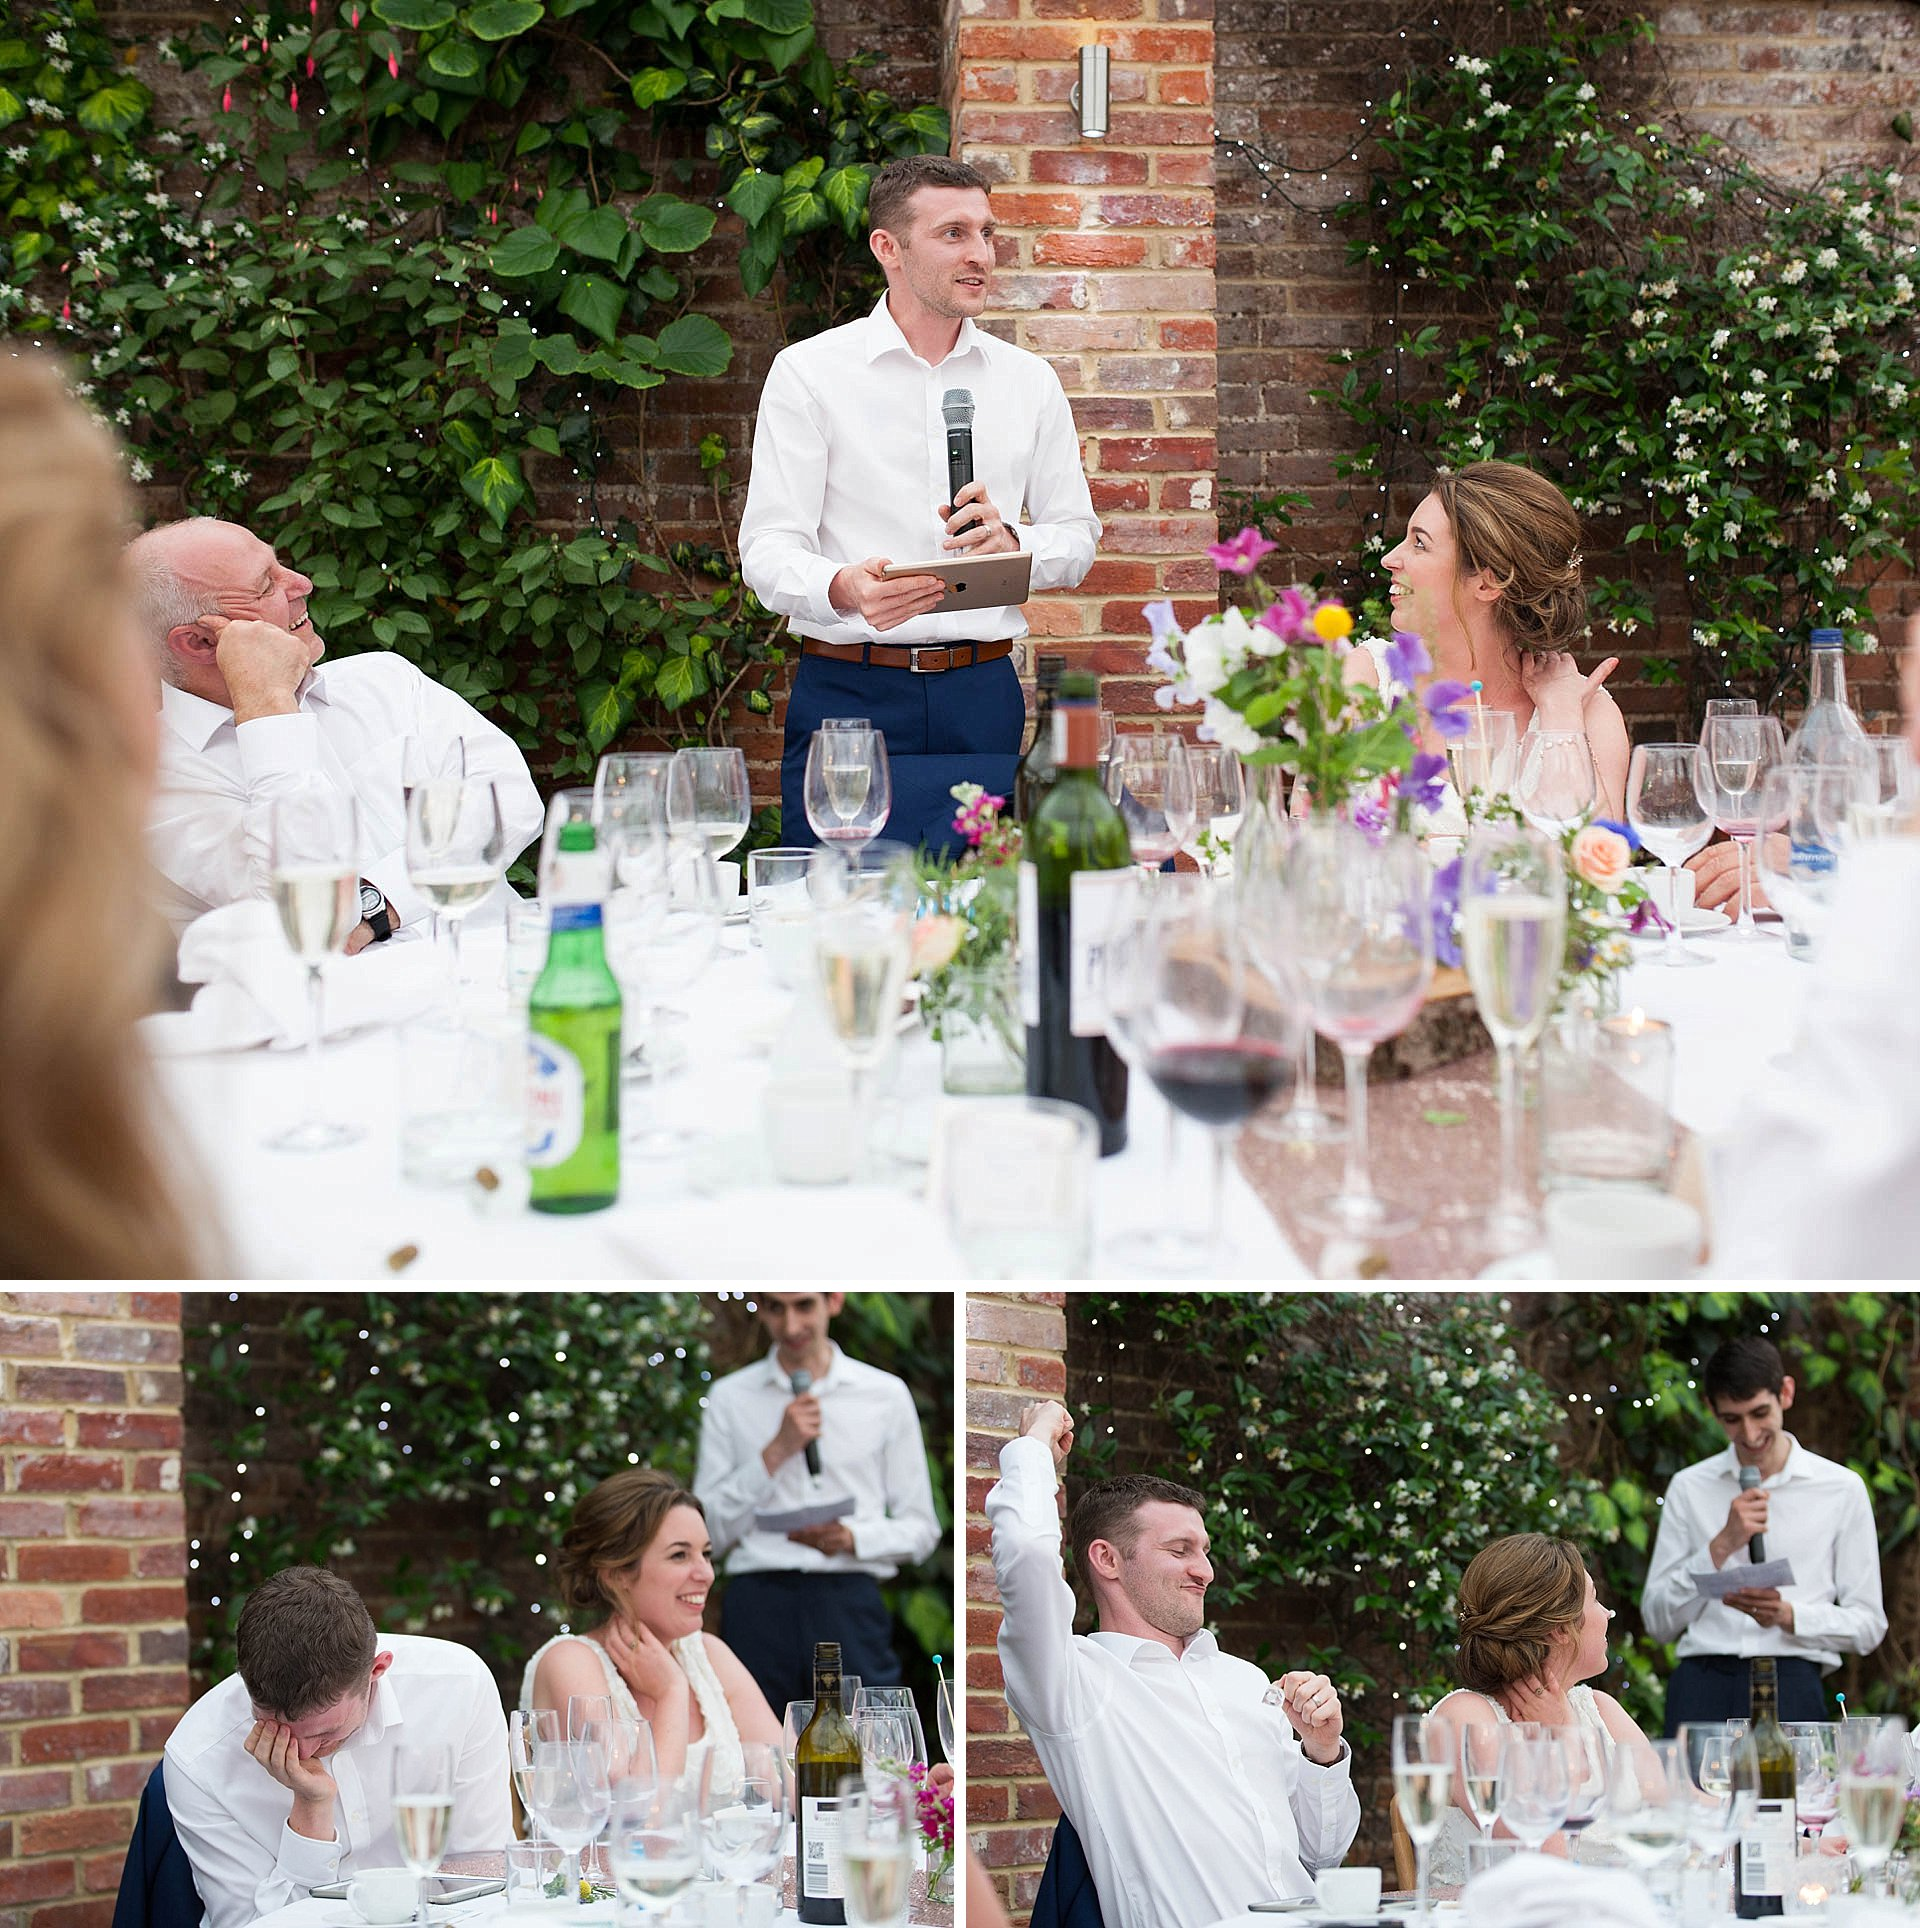 Surrey wedding - the speeches